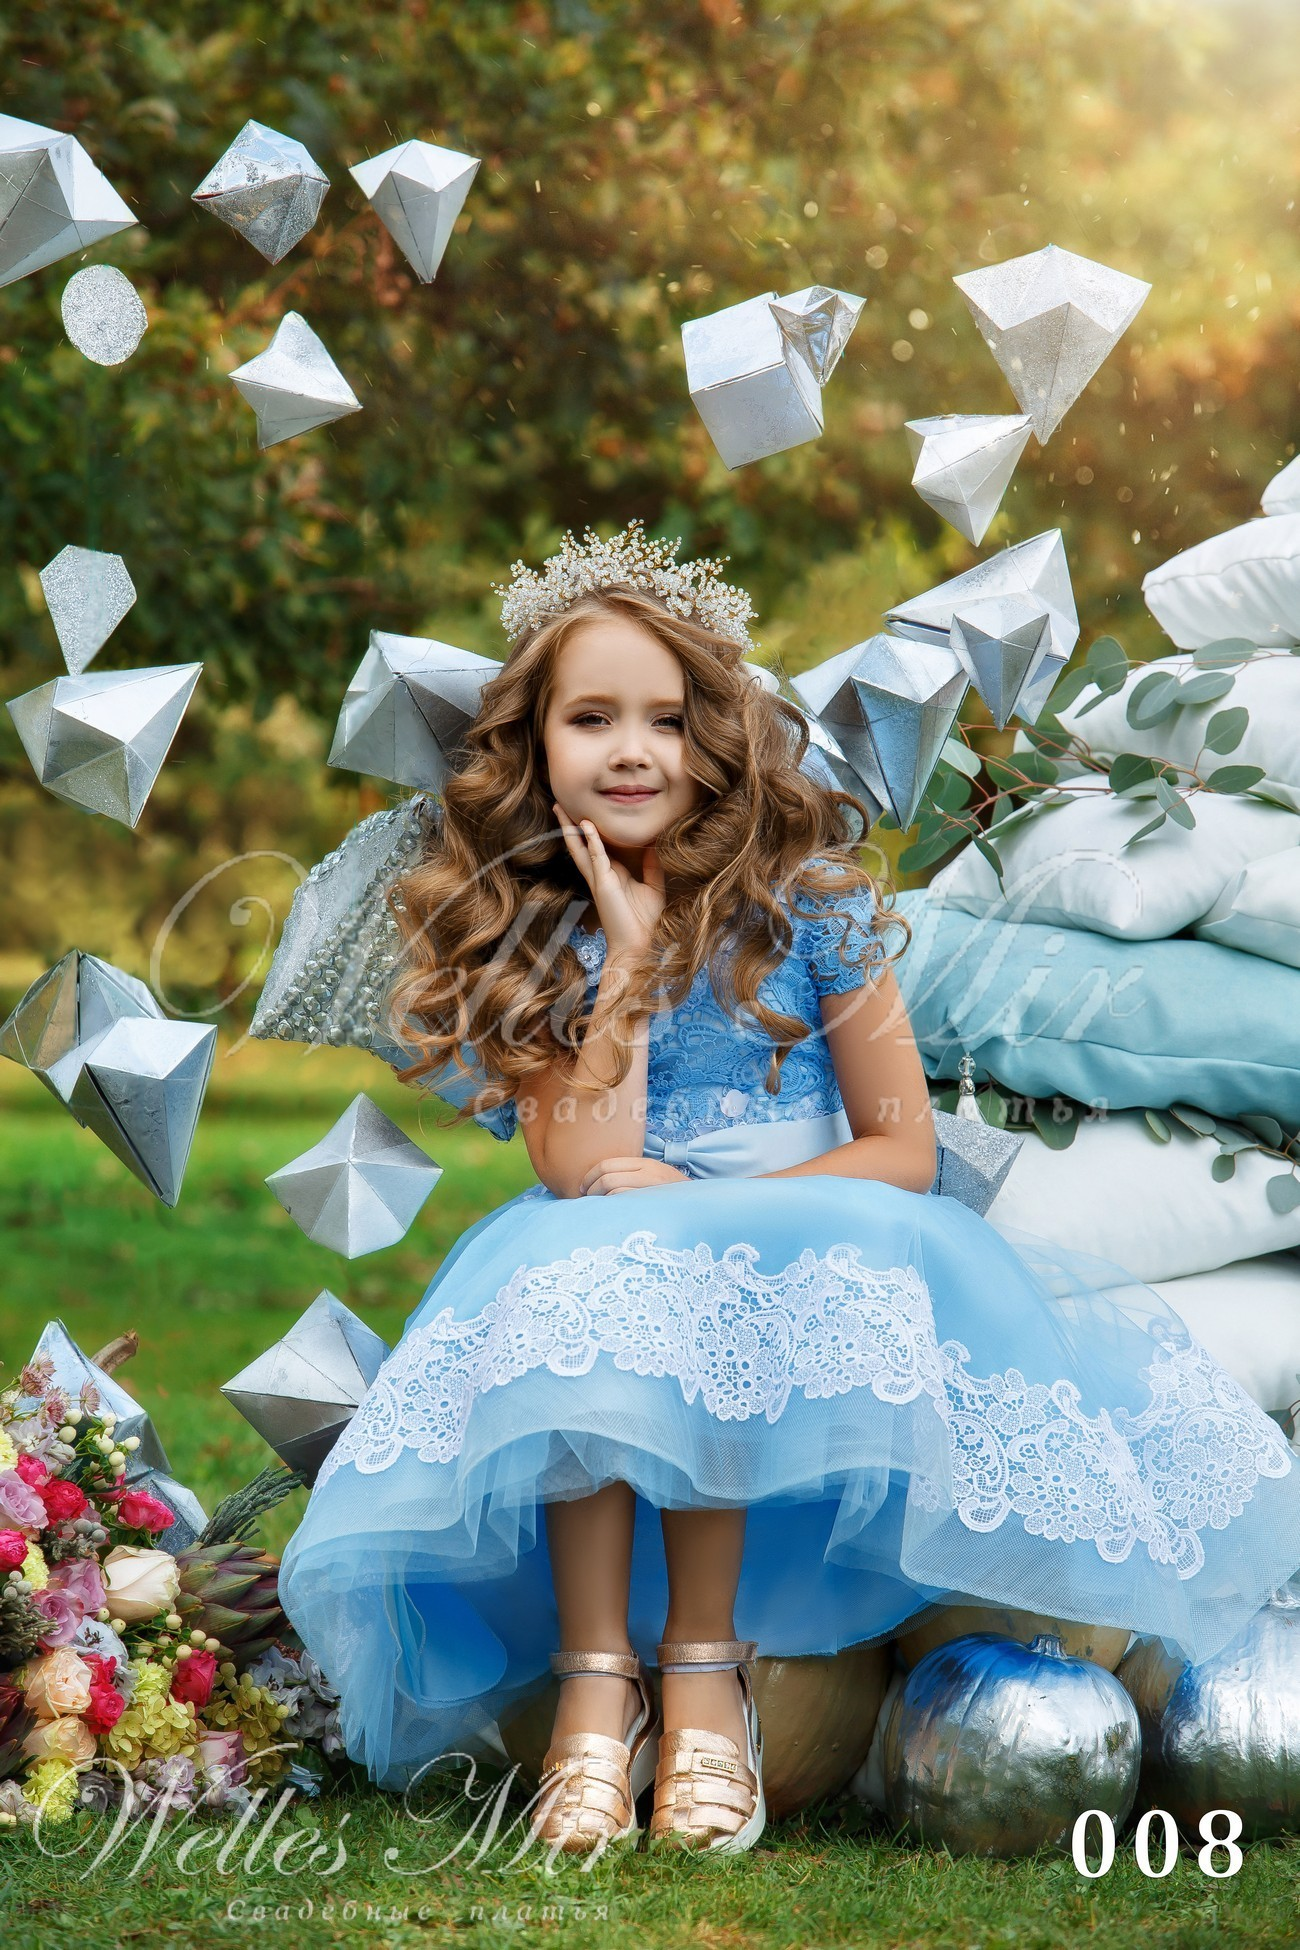 Kids Deluxe Collection 2018 - 008